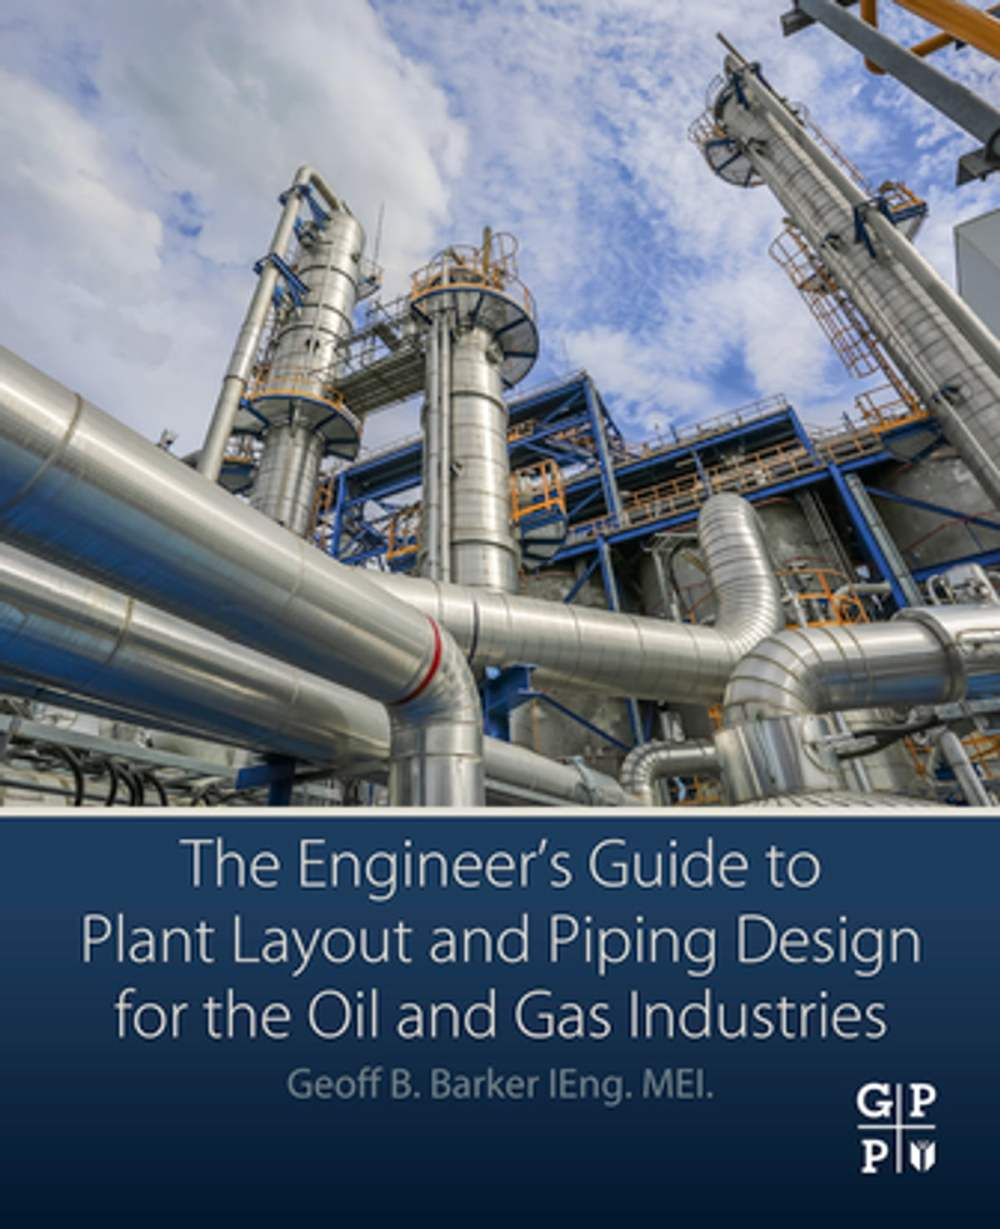 medium resolution of the engineer s guide to plant layout and piping design for the oil and gas industries ebook by geoff b barker 9780128146545 rakuten kobo